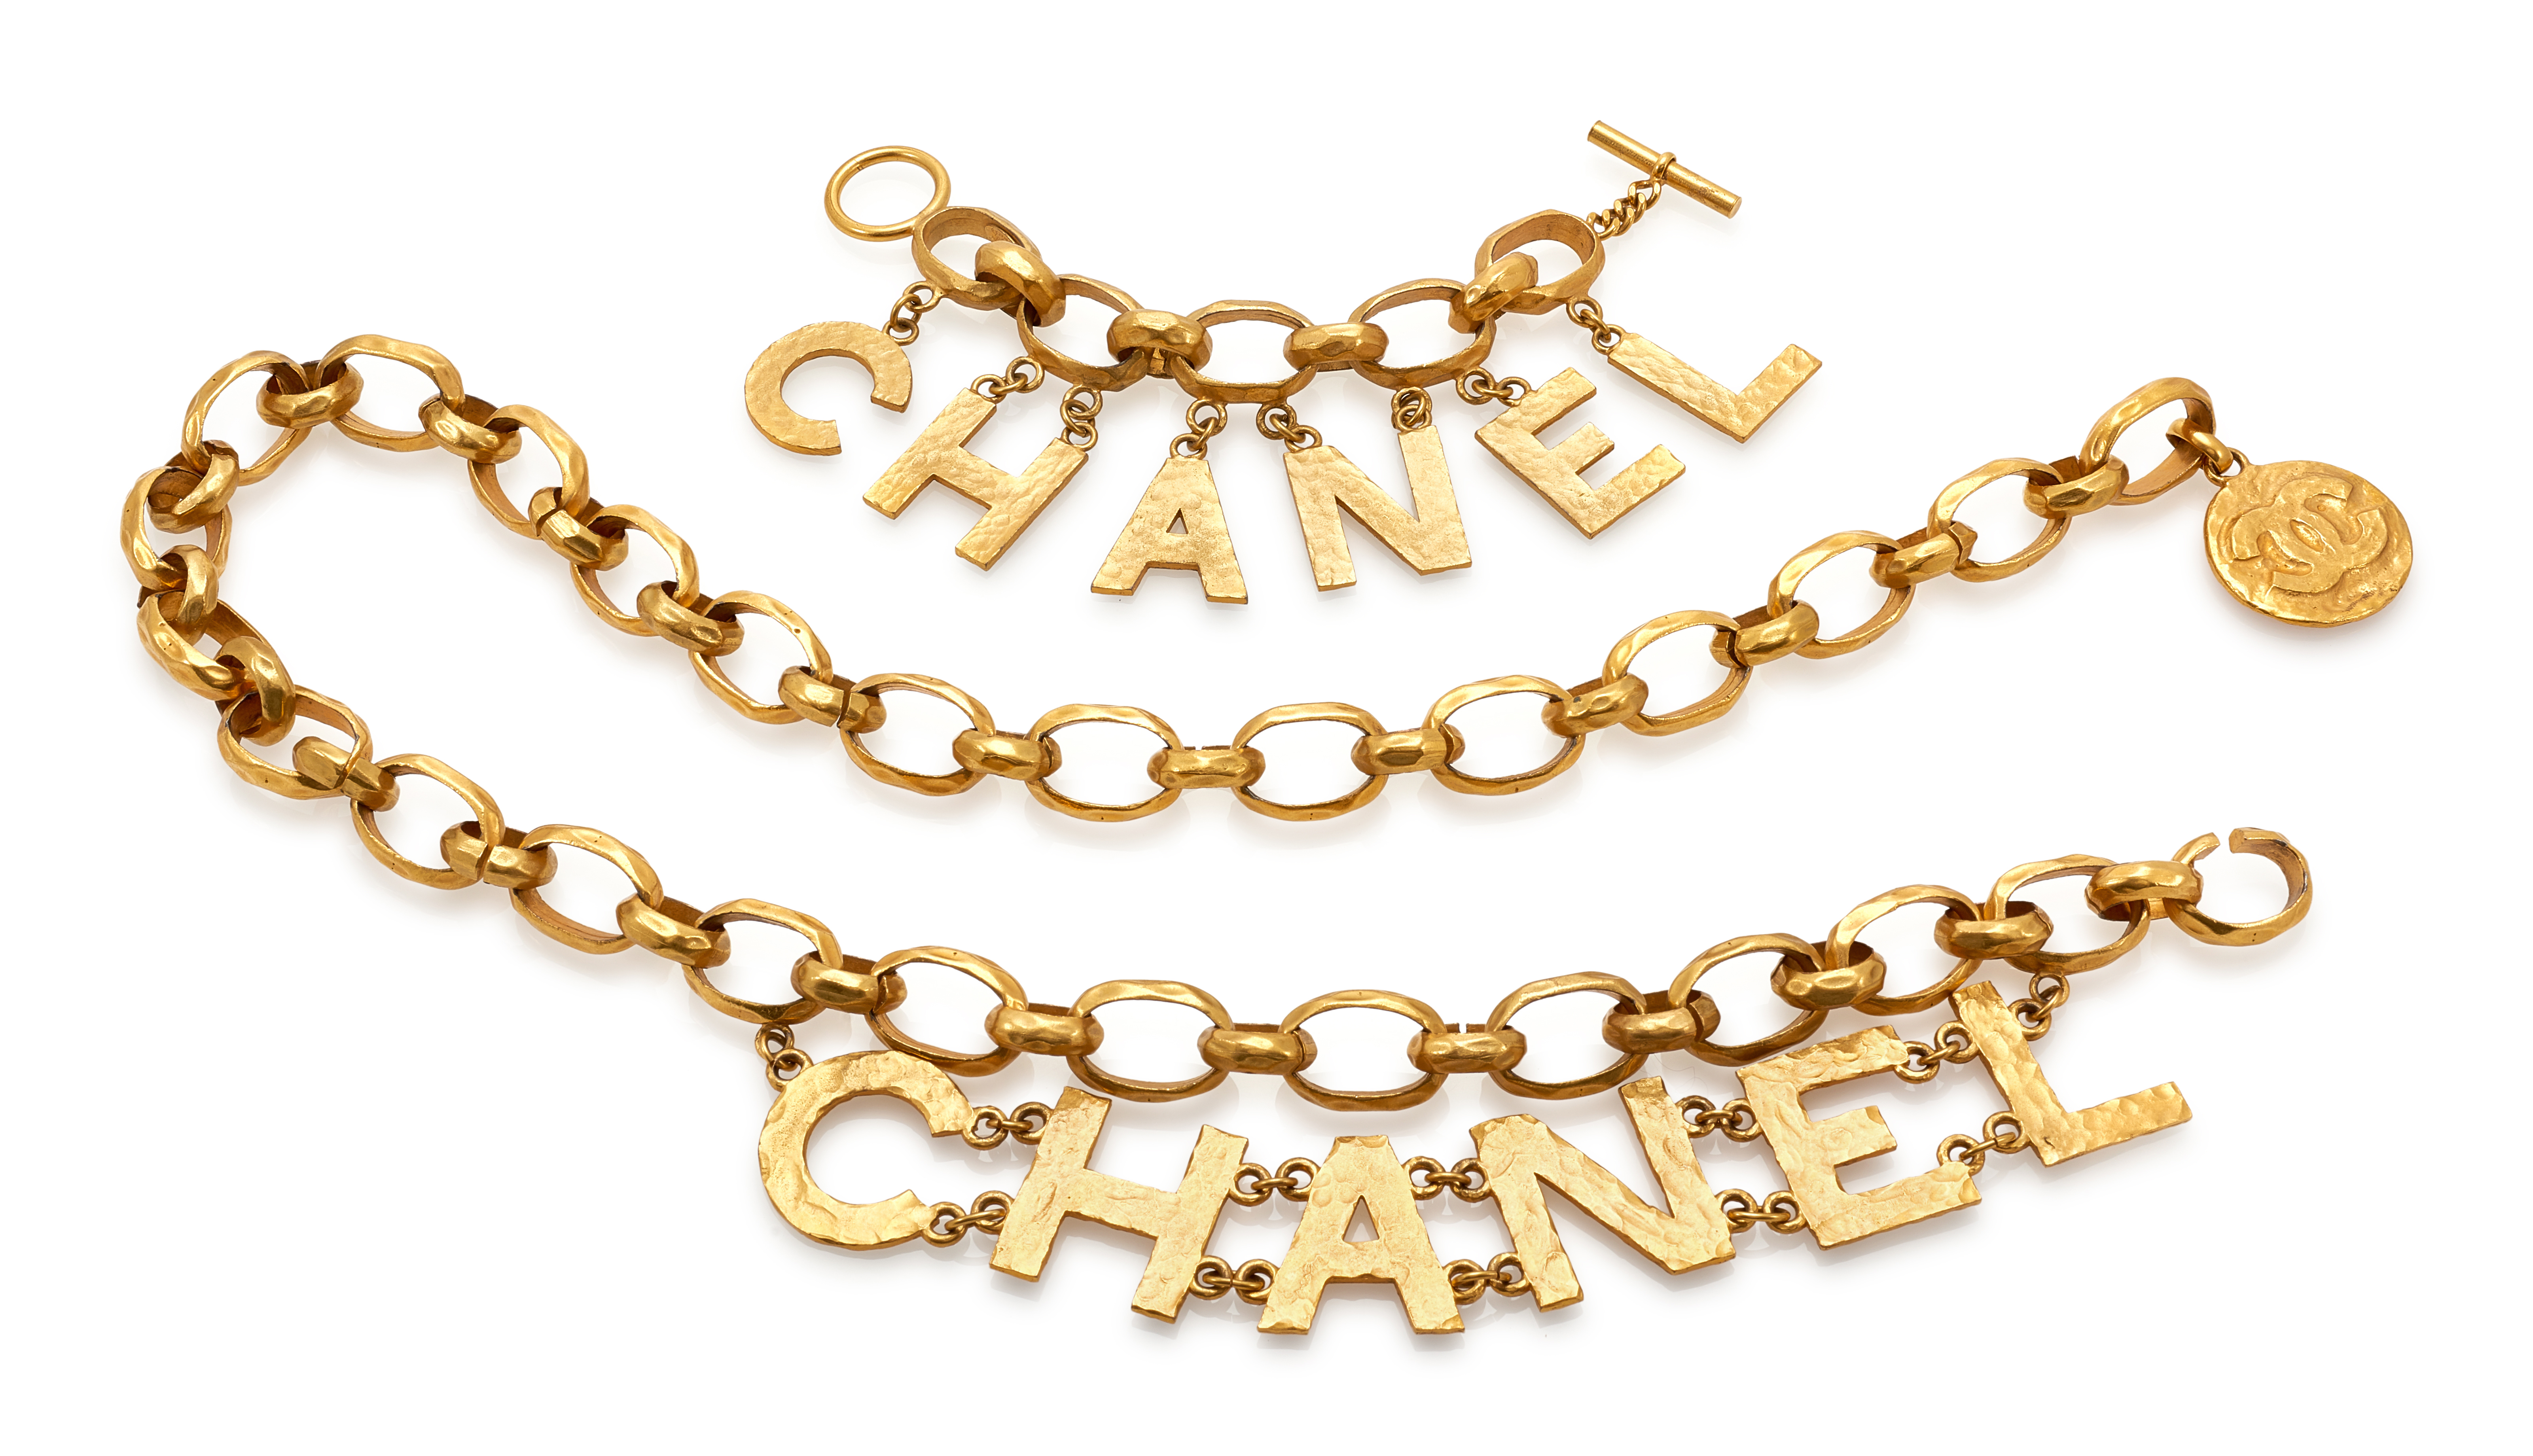 Chanel chain belt and bracelet to be auctioned online by Sotheby's